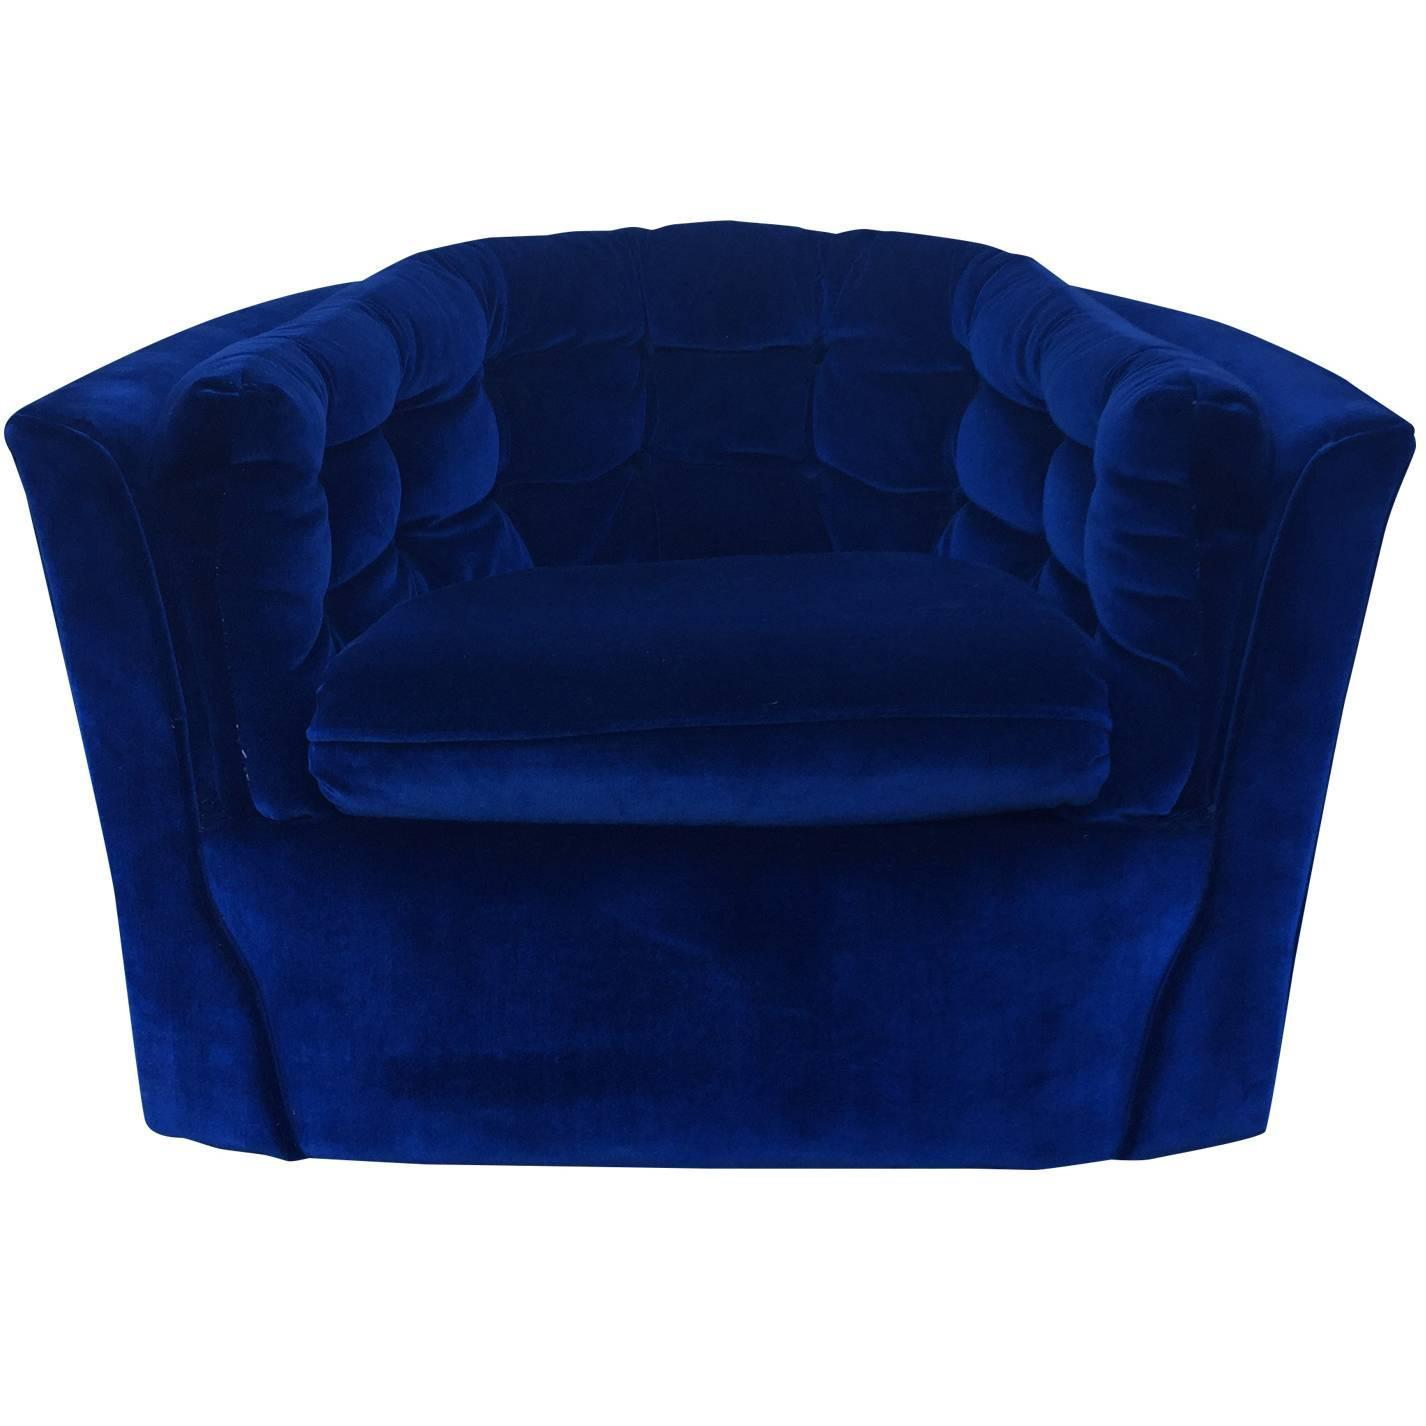 Blue Swivel Chair Royal Blue Velvet Mid Century Modern Swivel Chair For Sale